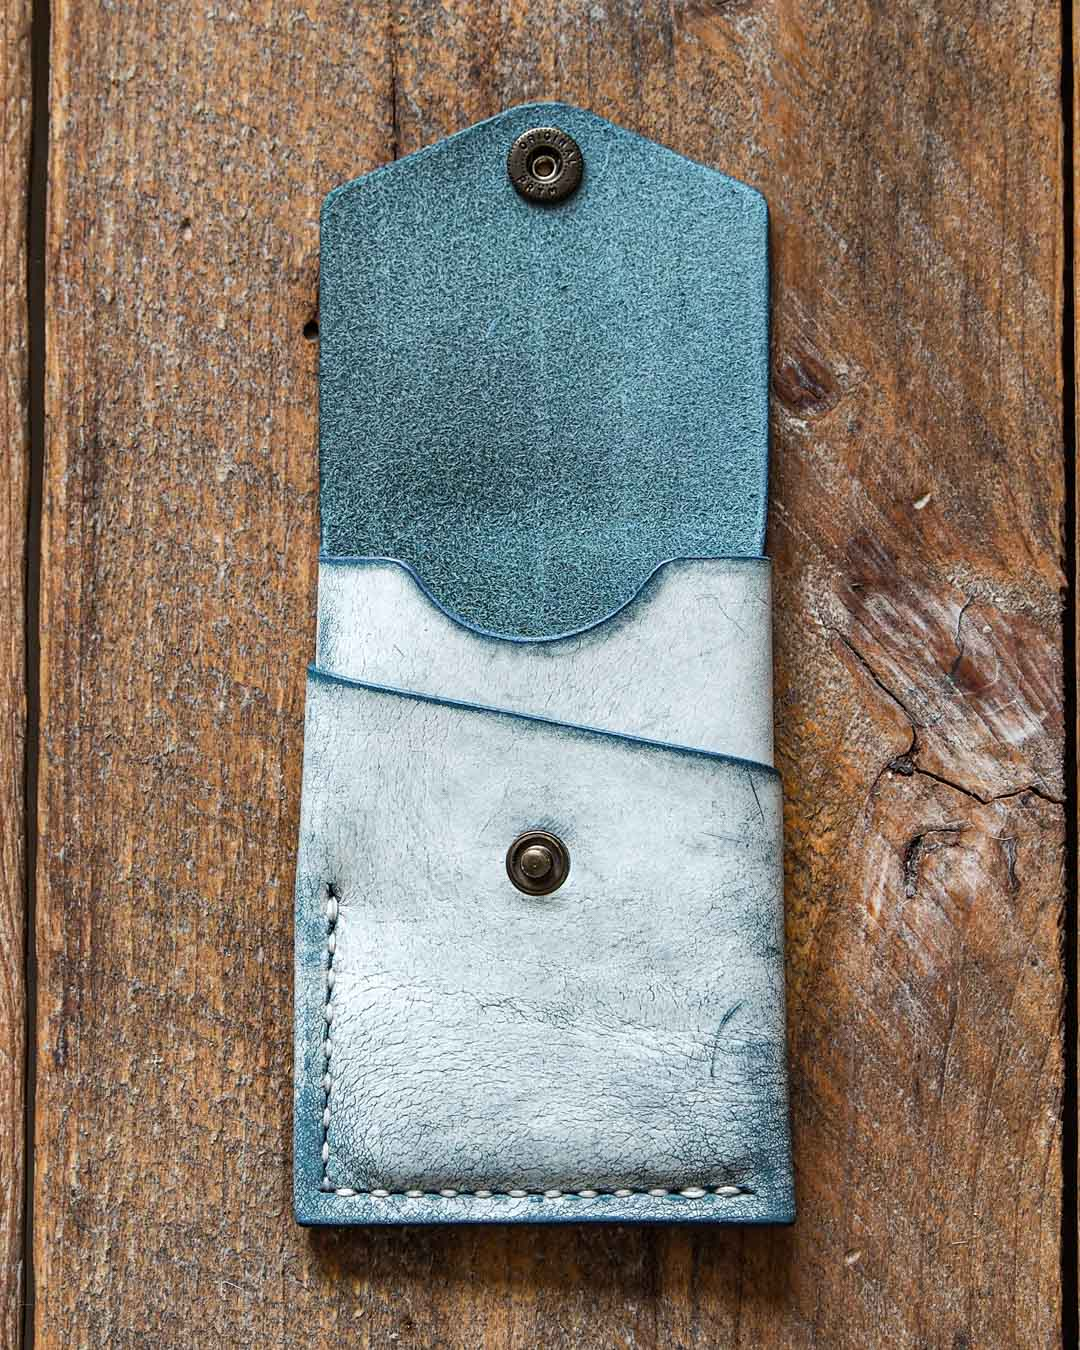 Luava handcrafted leather overfold wallet ghost ocean conceria la bretagna cardholder card holder handmade in finland front open